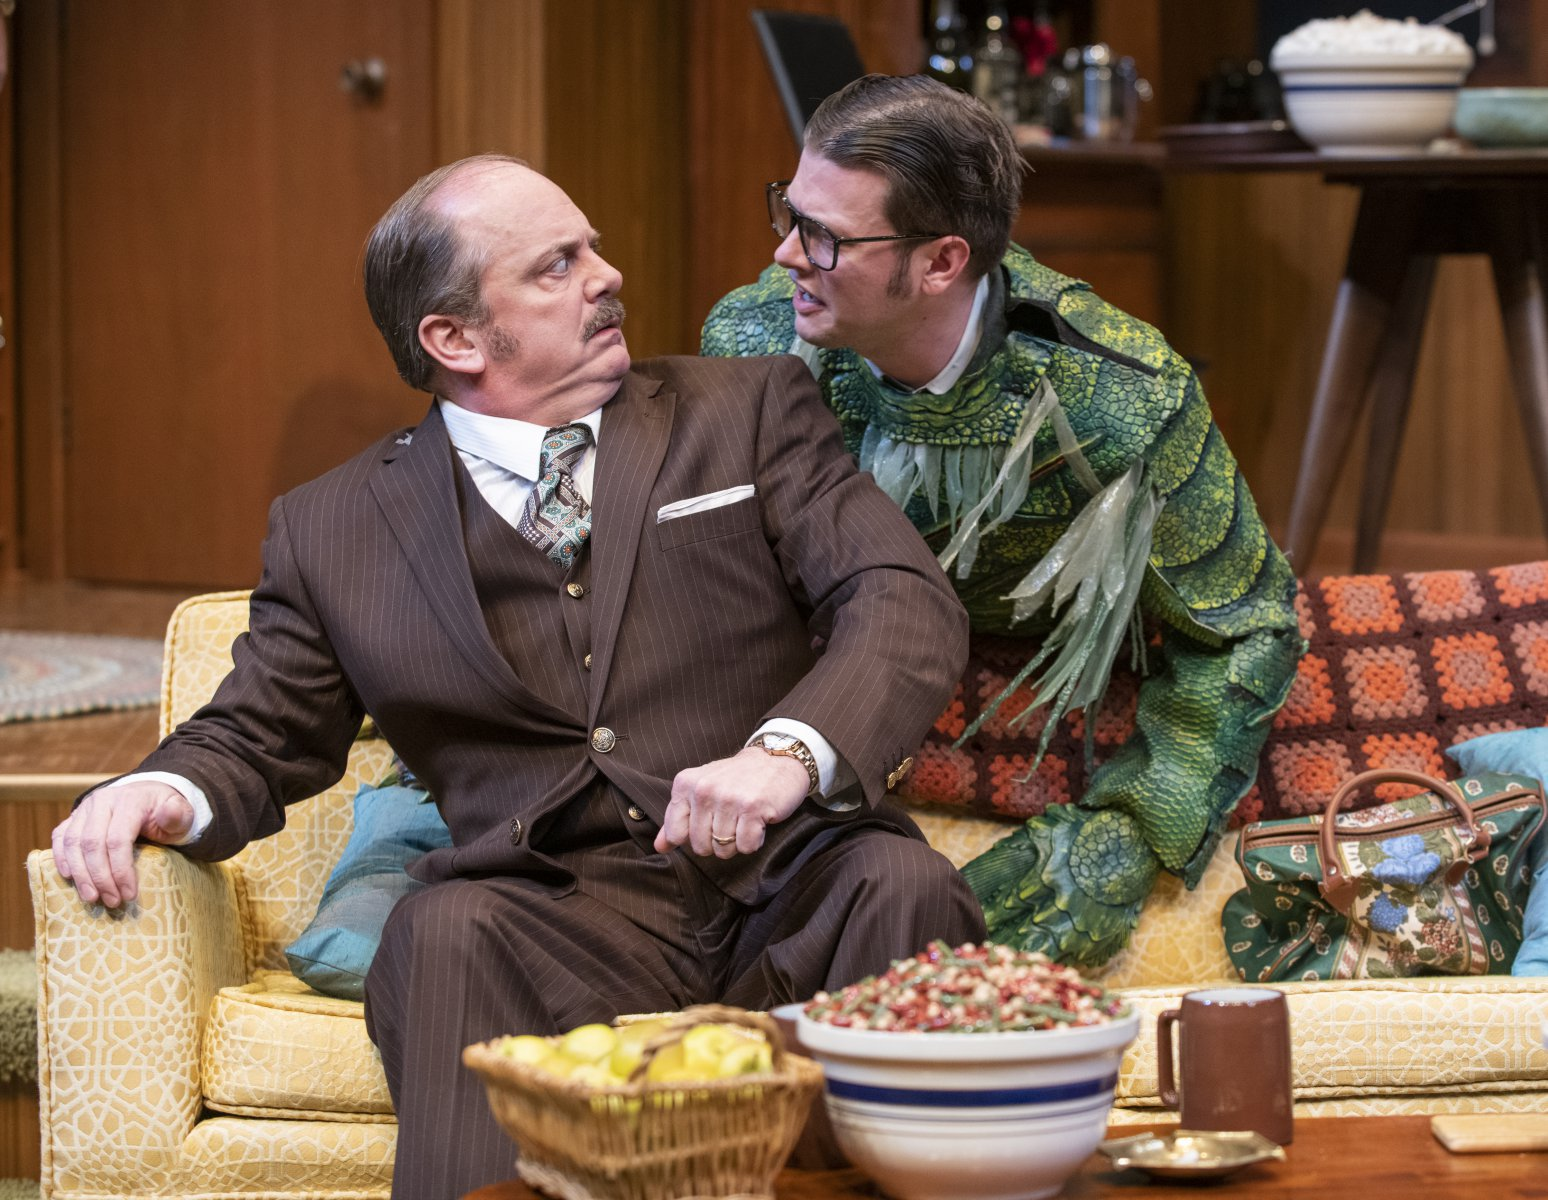 Milwaukee Repertory Theater presents The Nerd in the Quadracci Powerhouse November 12 – December 15, 2019. Left to right: Chris Mixon and Michael Doherty.